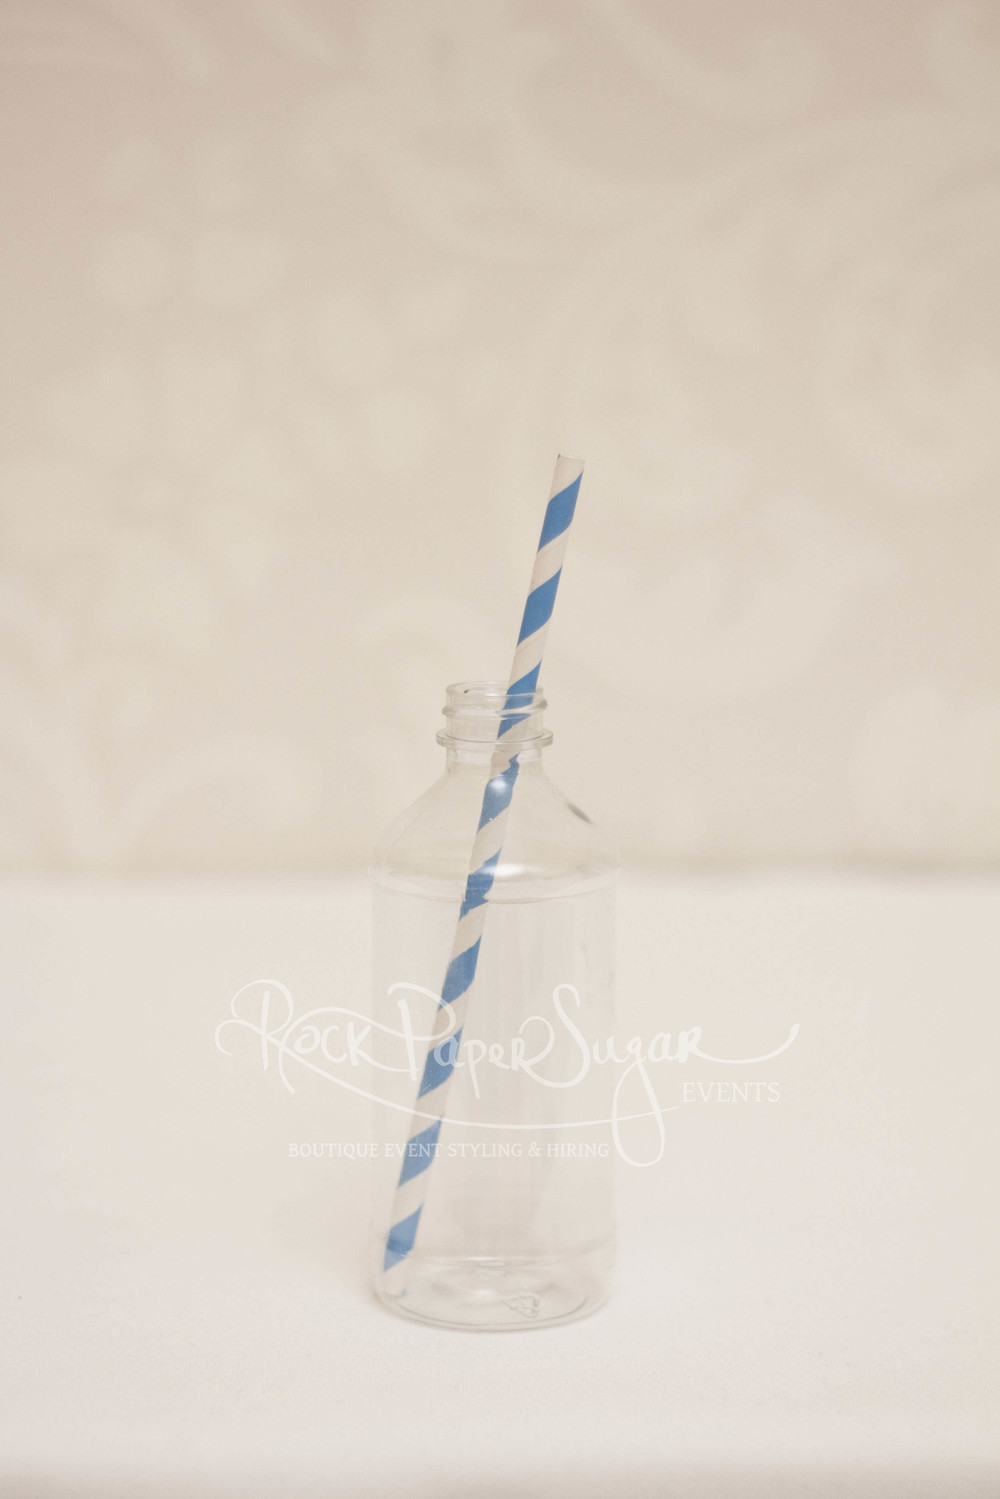 Rock Paper Sugar Events Drinkware 006.jpg